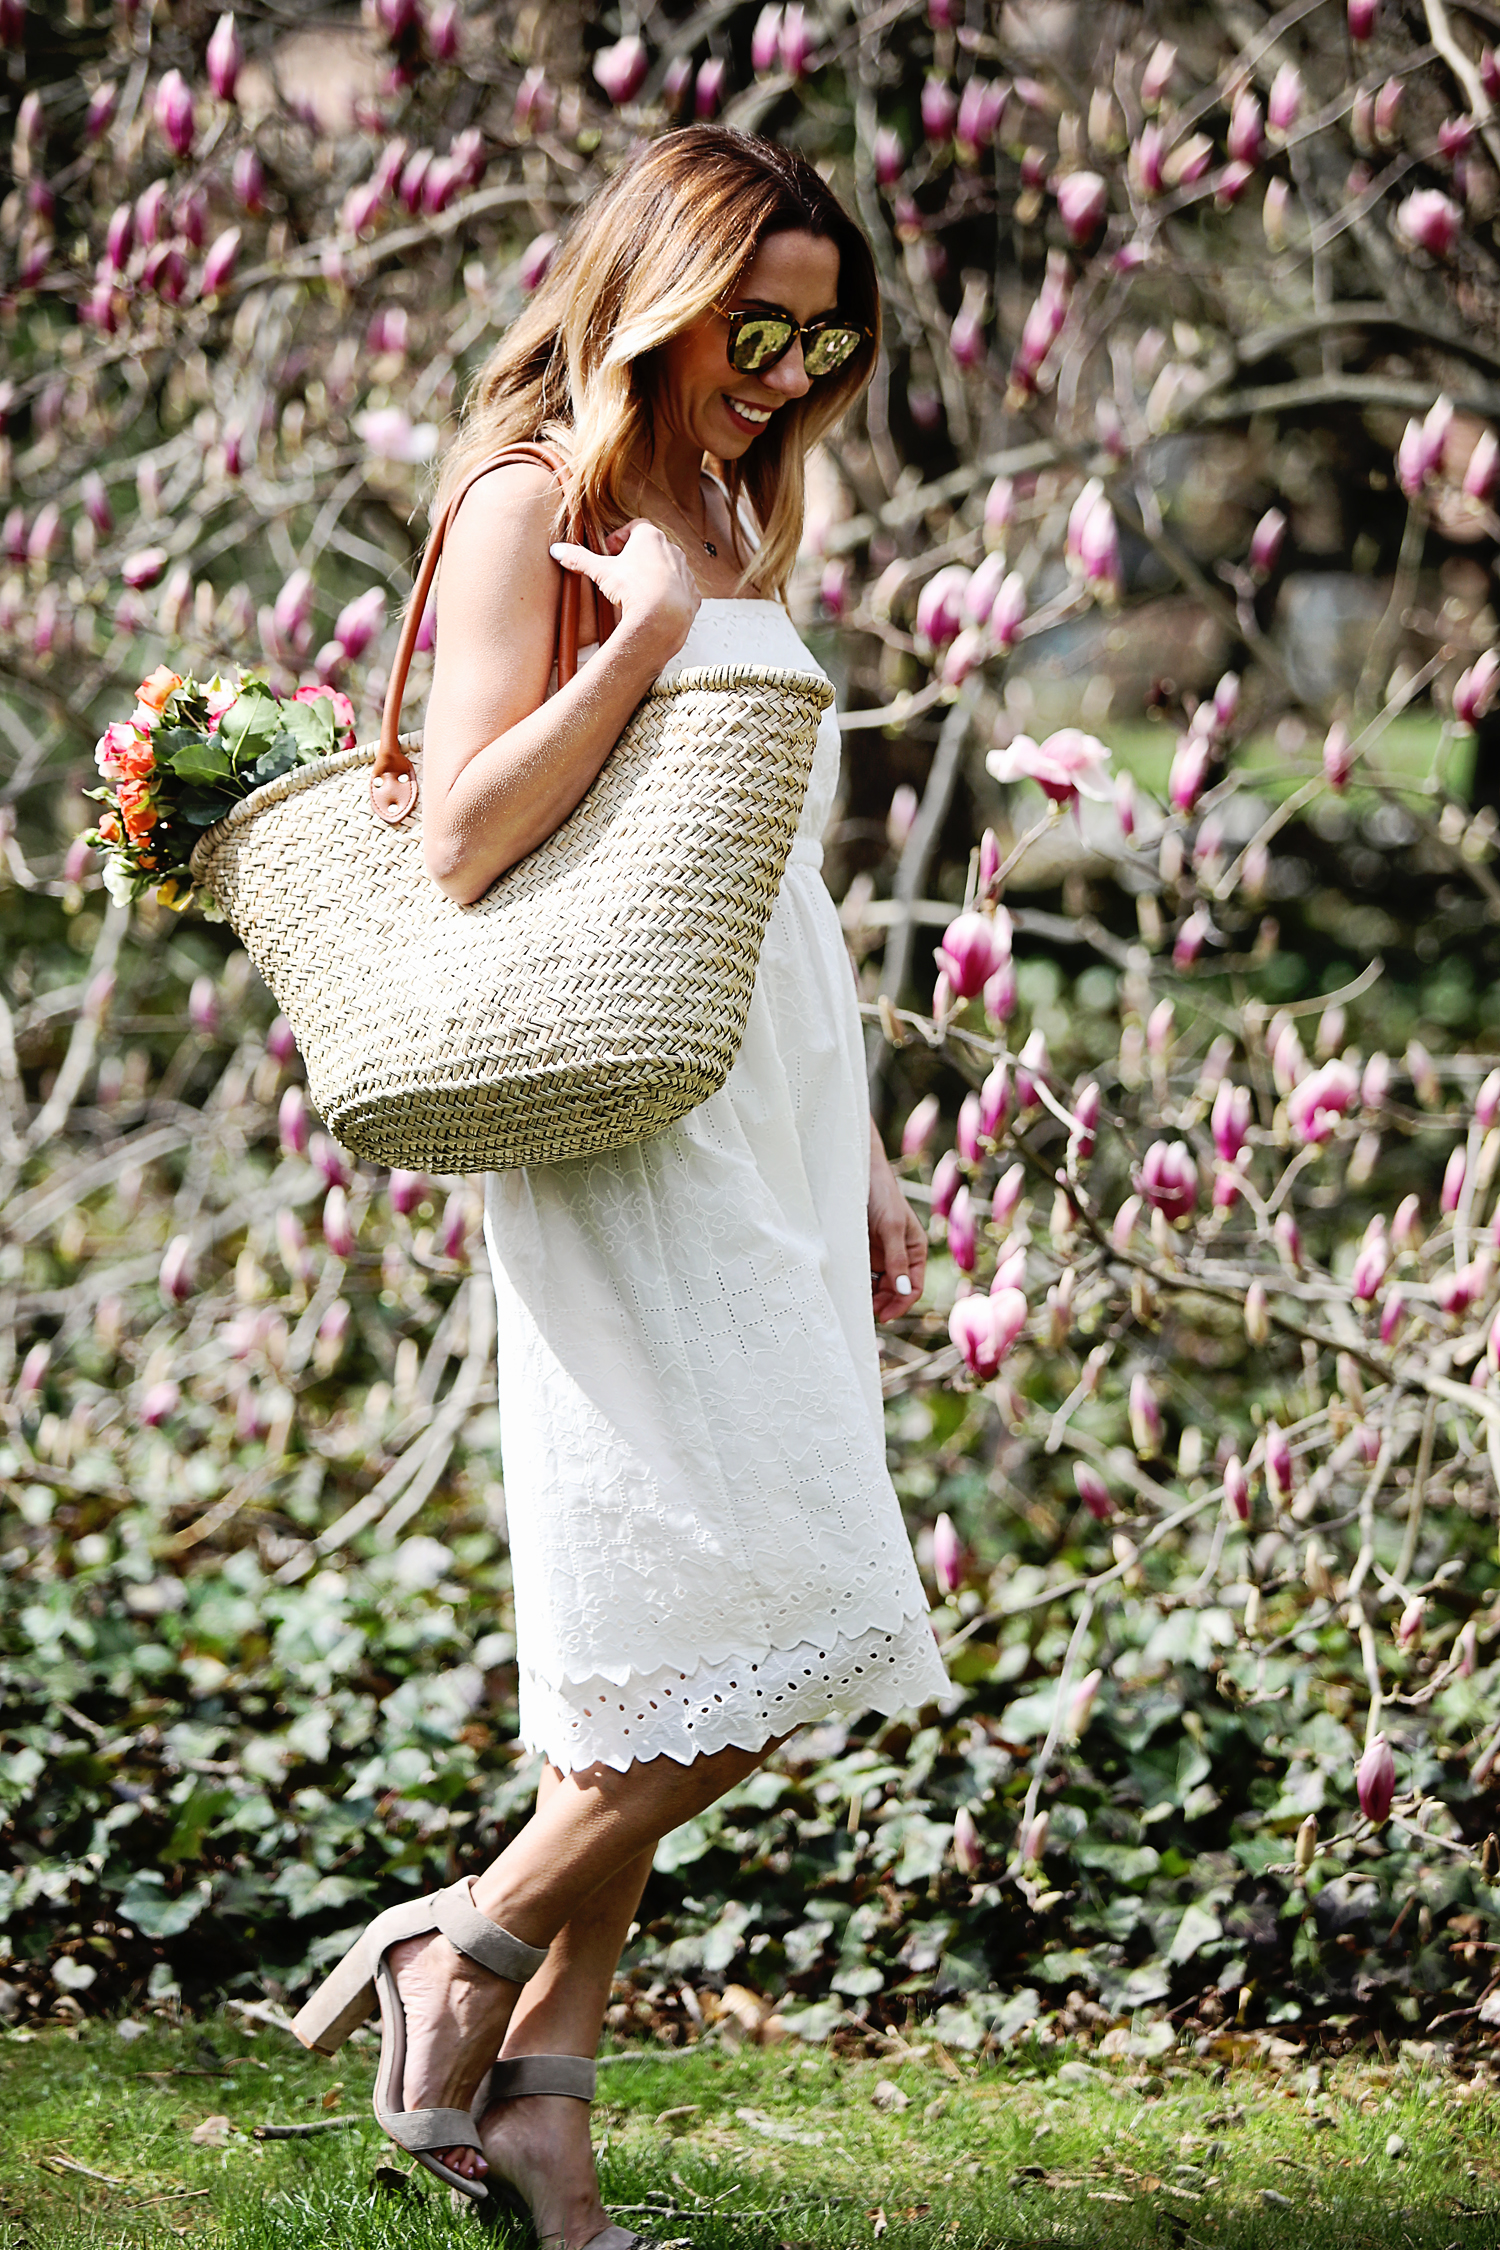 The Motherchic wearing white dress from madewell